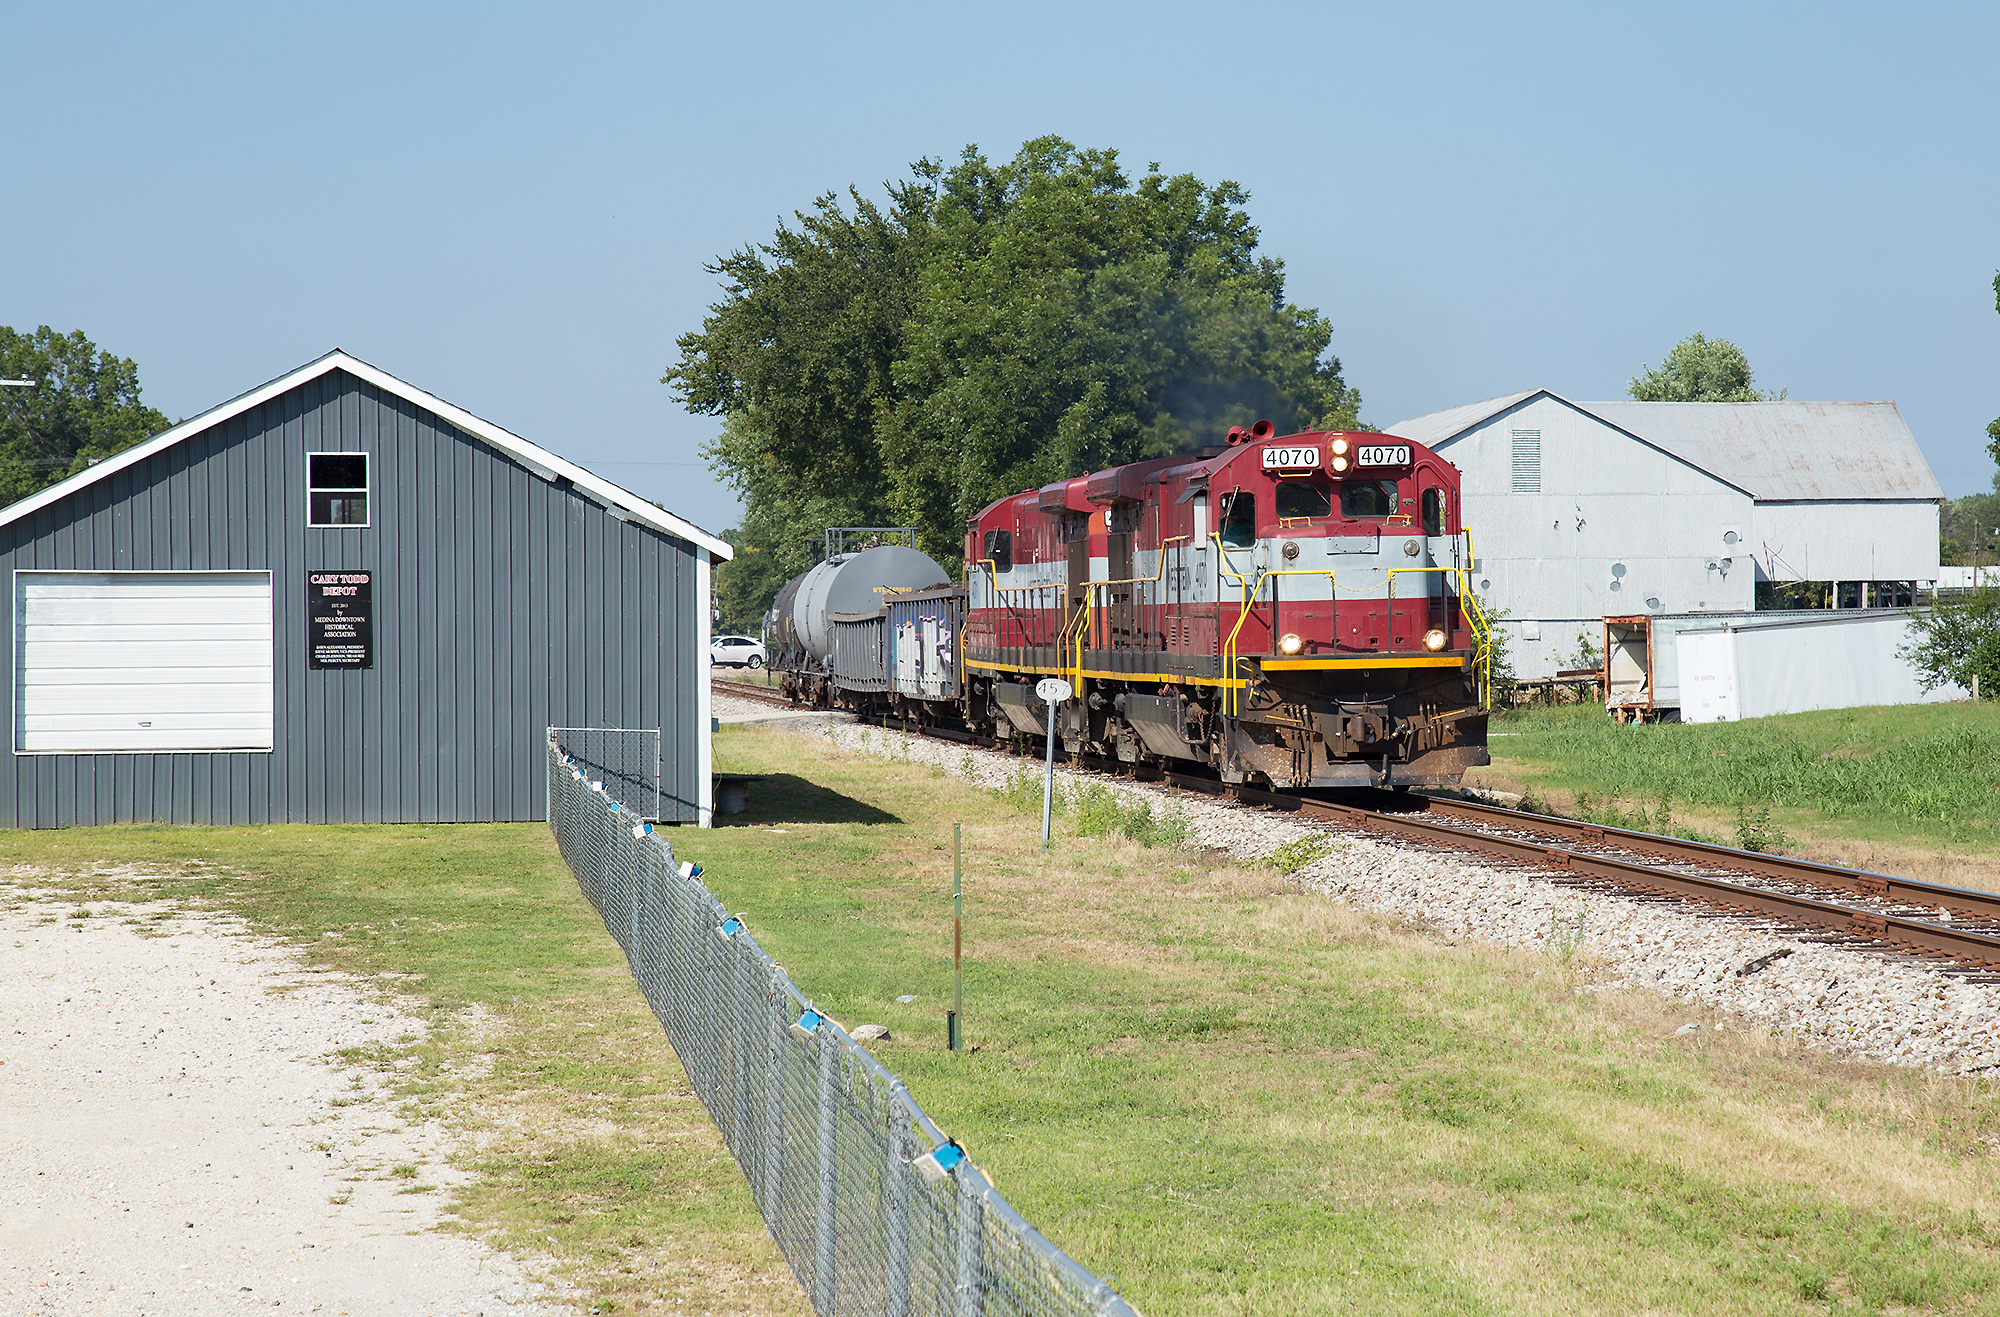 The West Tennessee Railroad | Railscapes